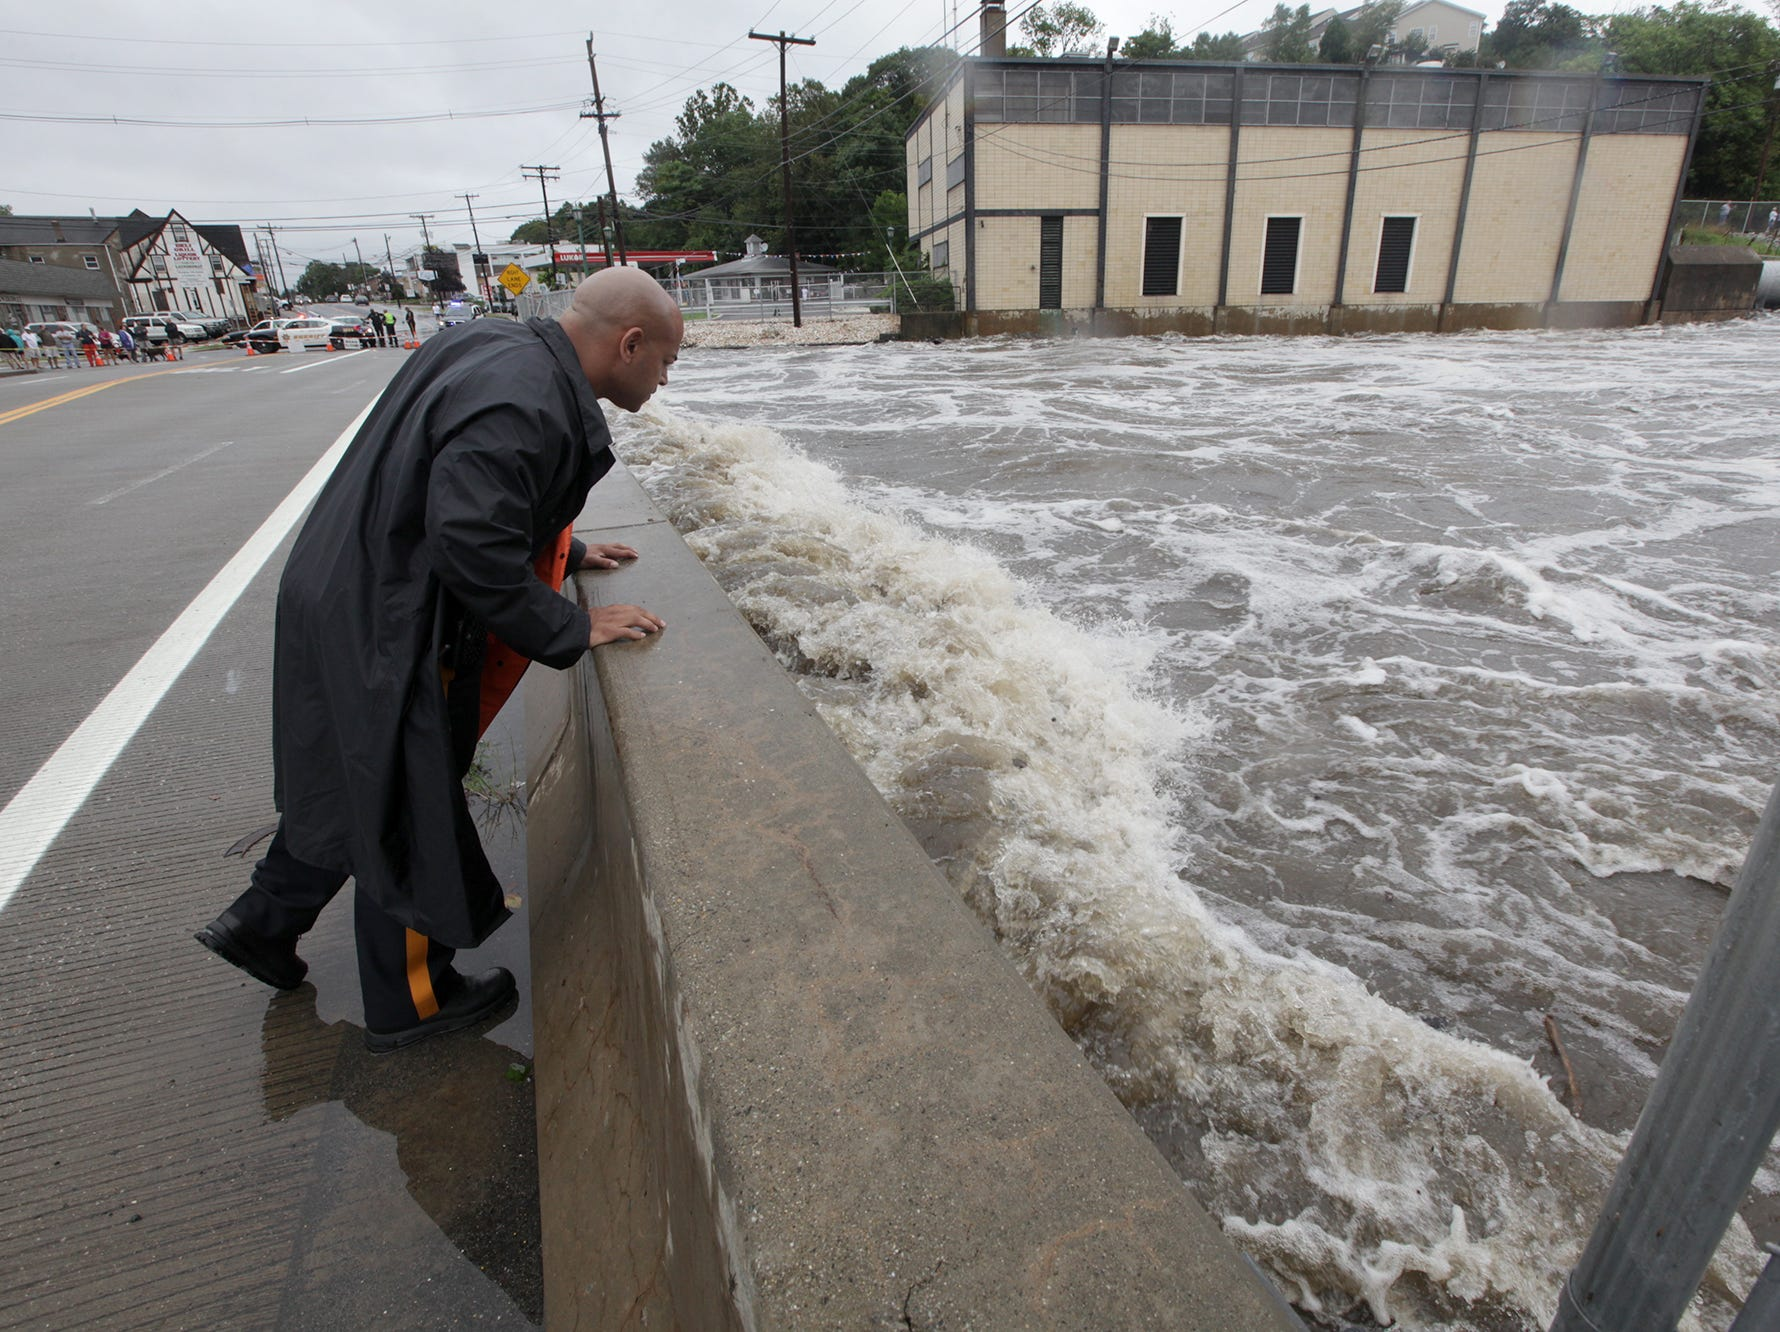 Passaic County Sheriff's Officer Ray Galan looks at the rushing flood waters that passed through the dam crash into the bridge that is part of Hamburg Turnpike.